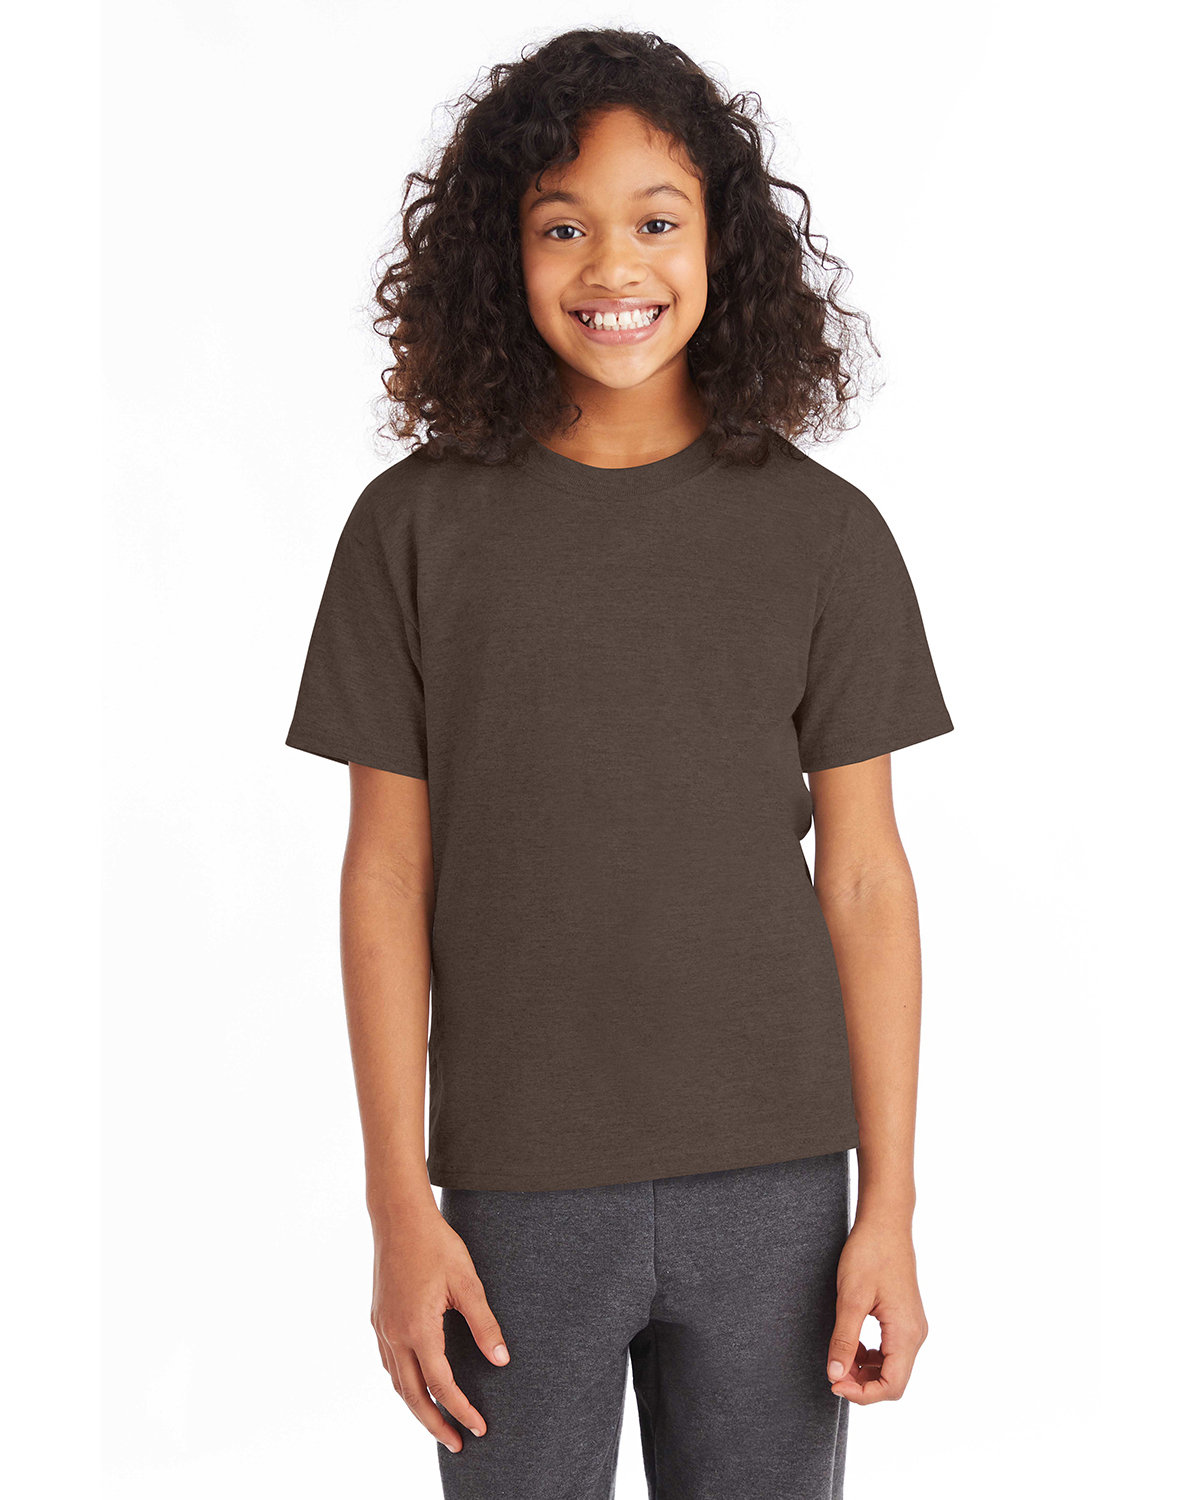 Hanes Youth 50/50 T-Shirt HEATHER BROWN